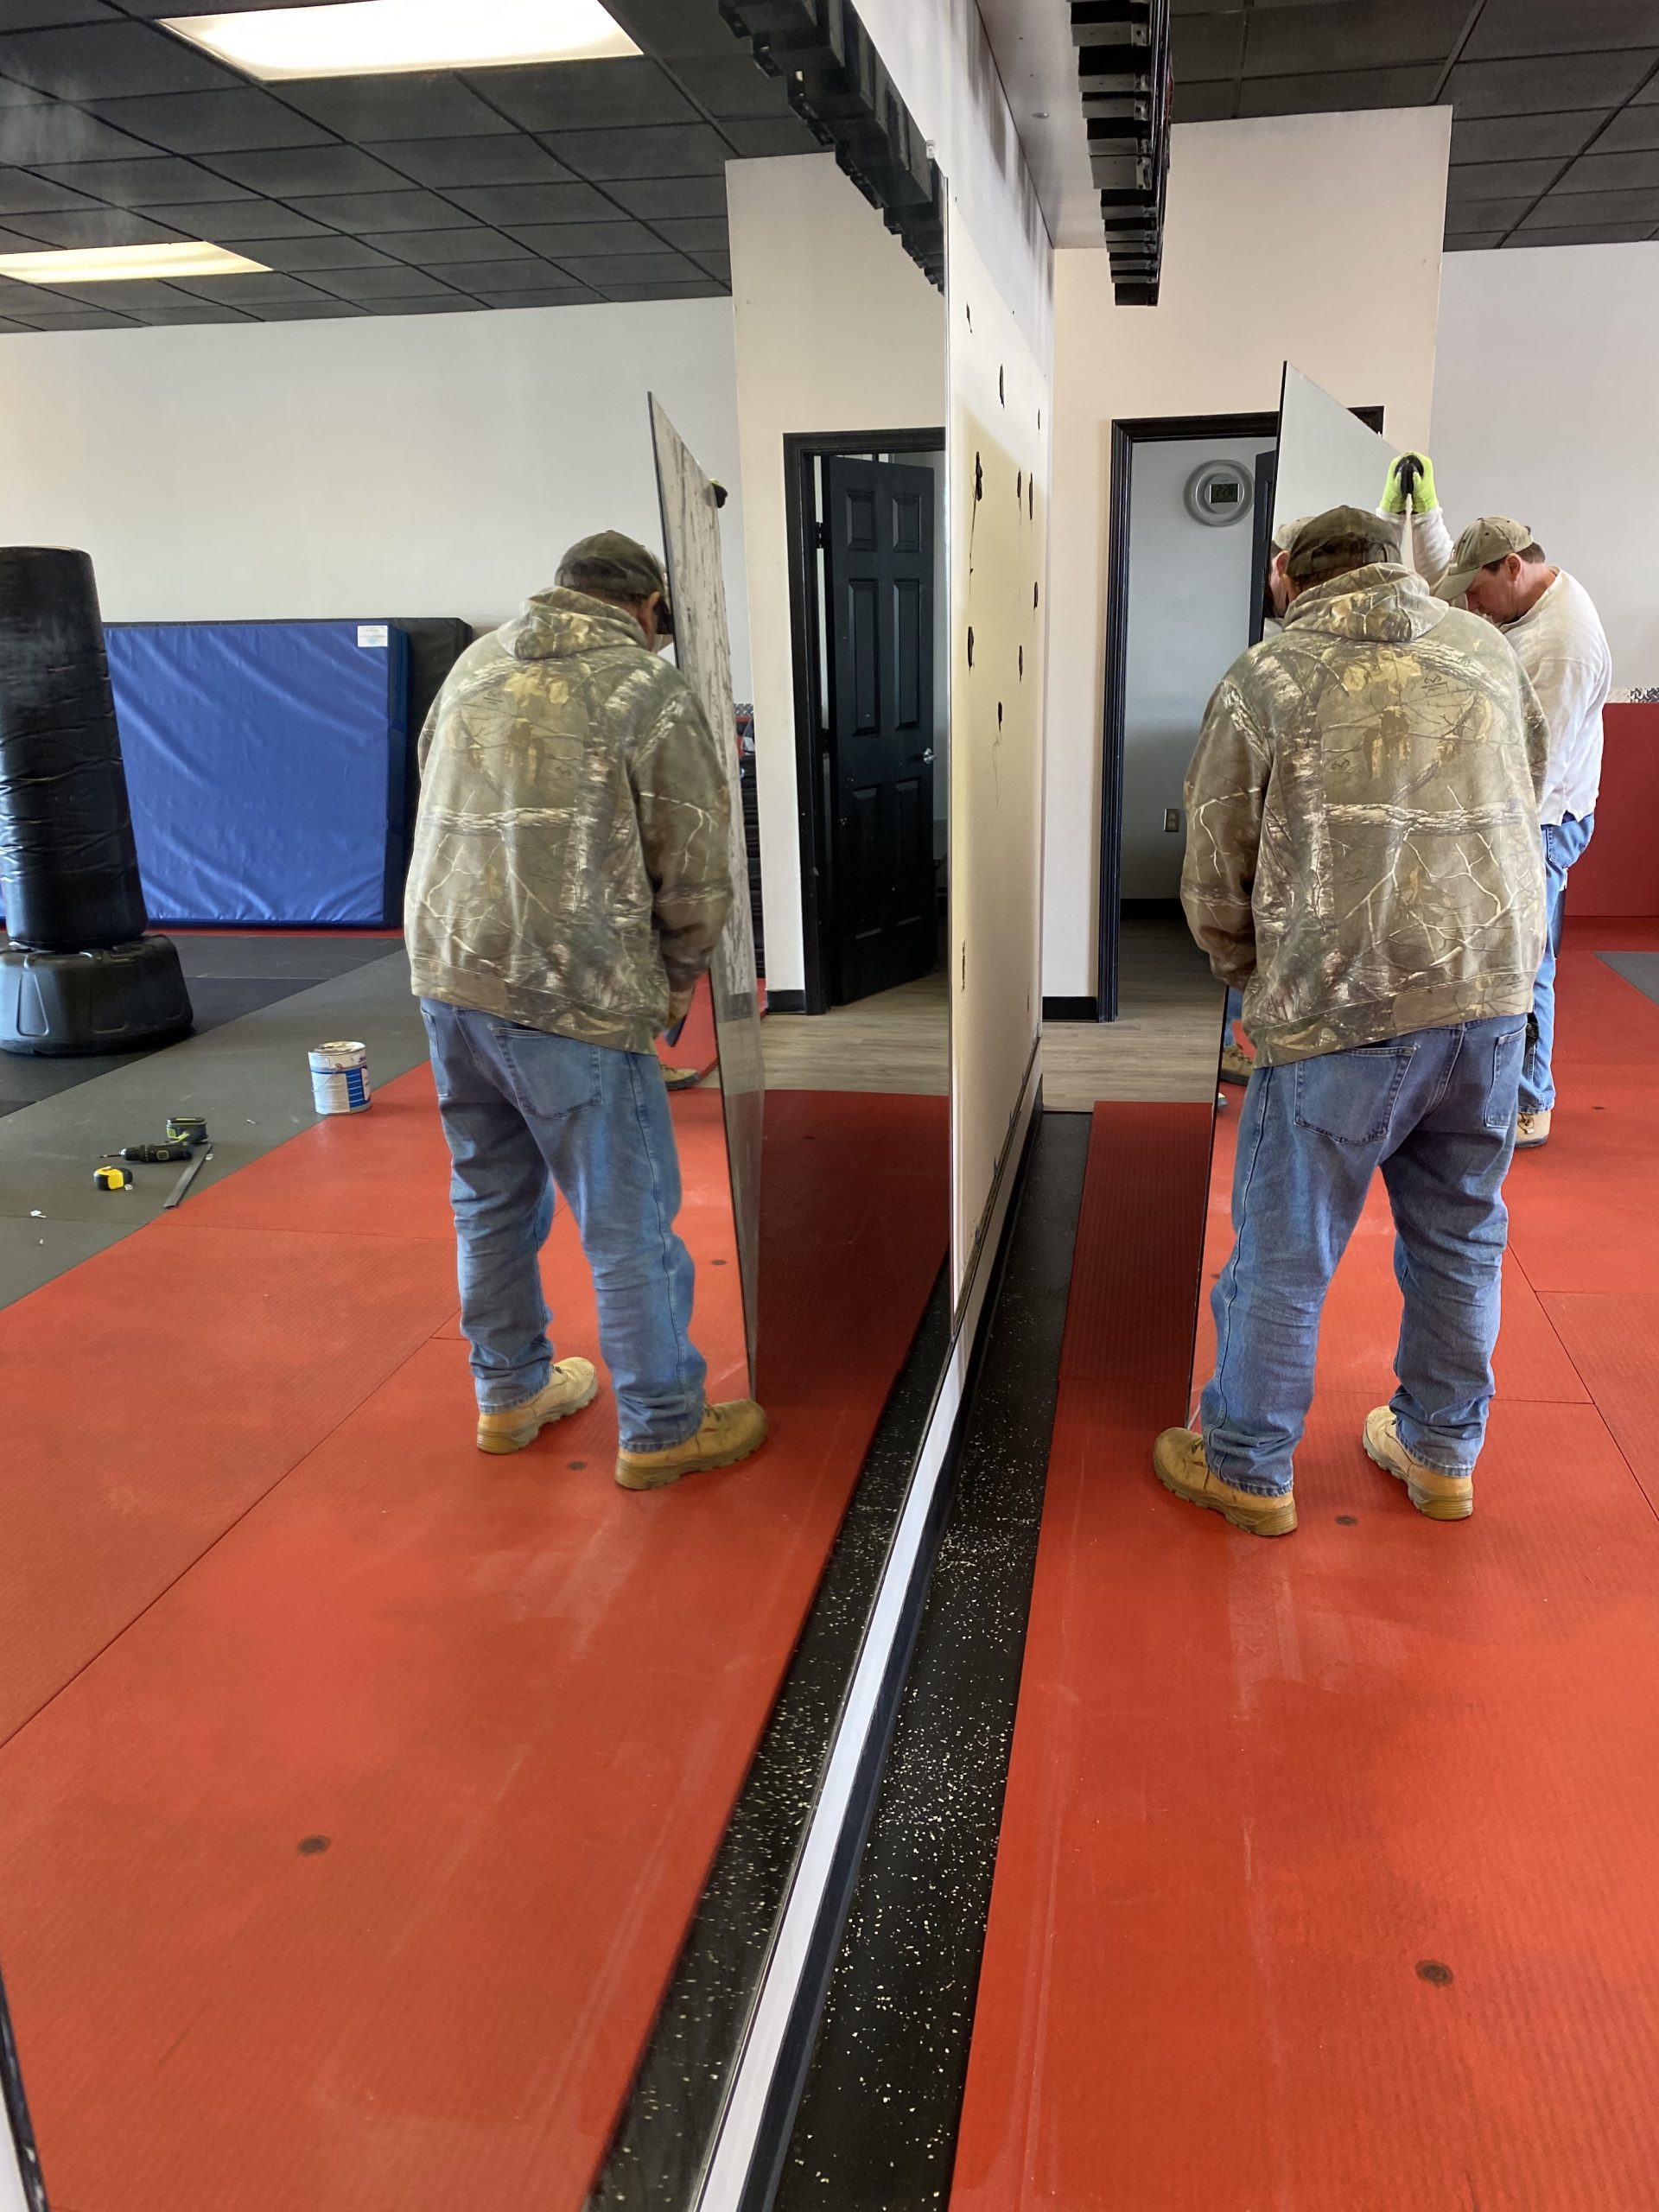 Men Removing Mirrors and GB Remodel